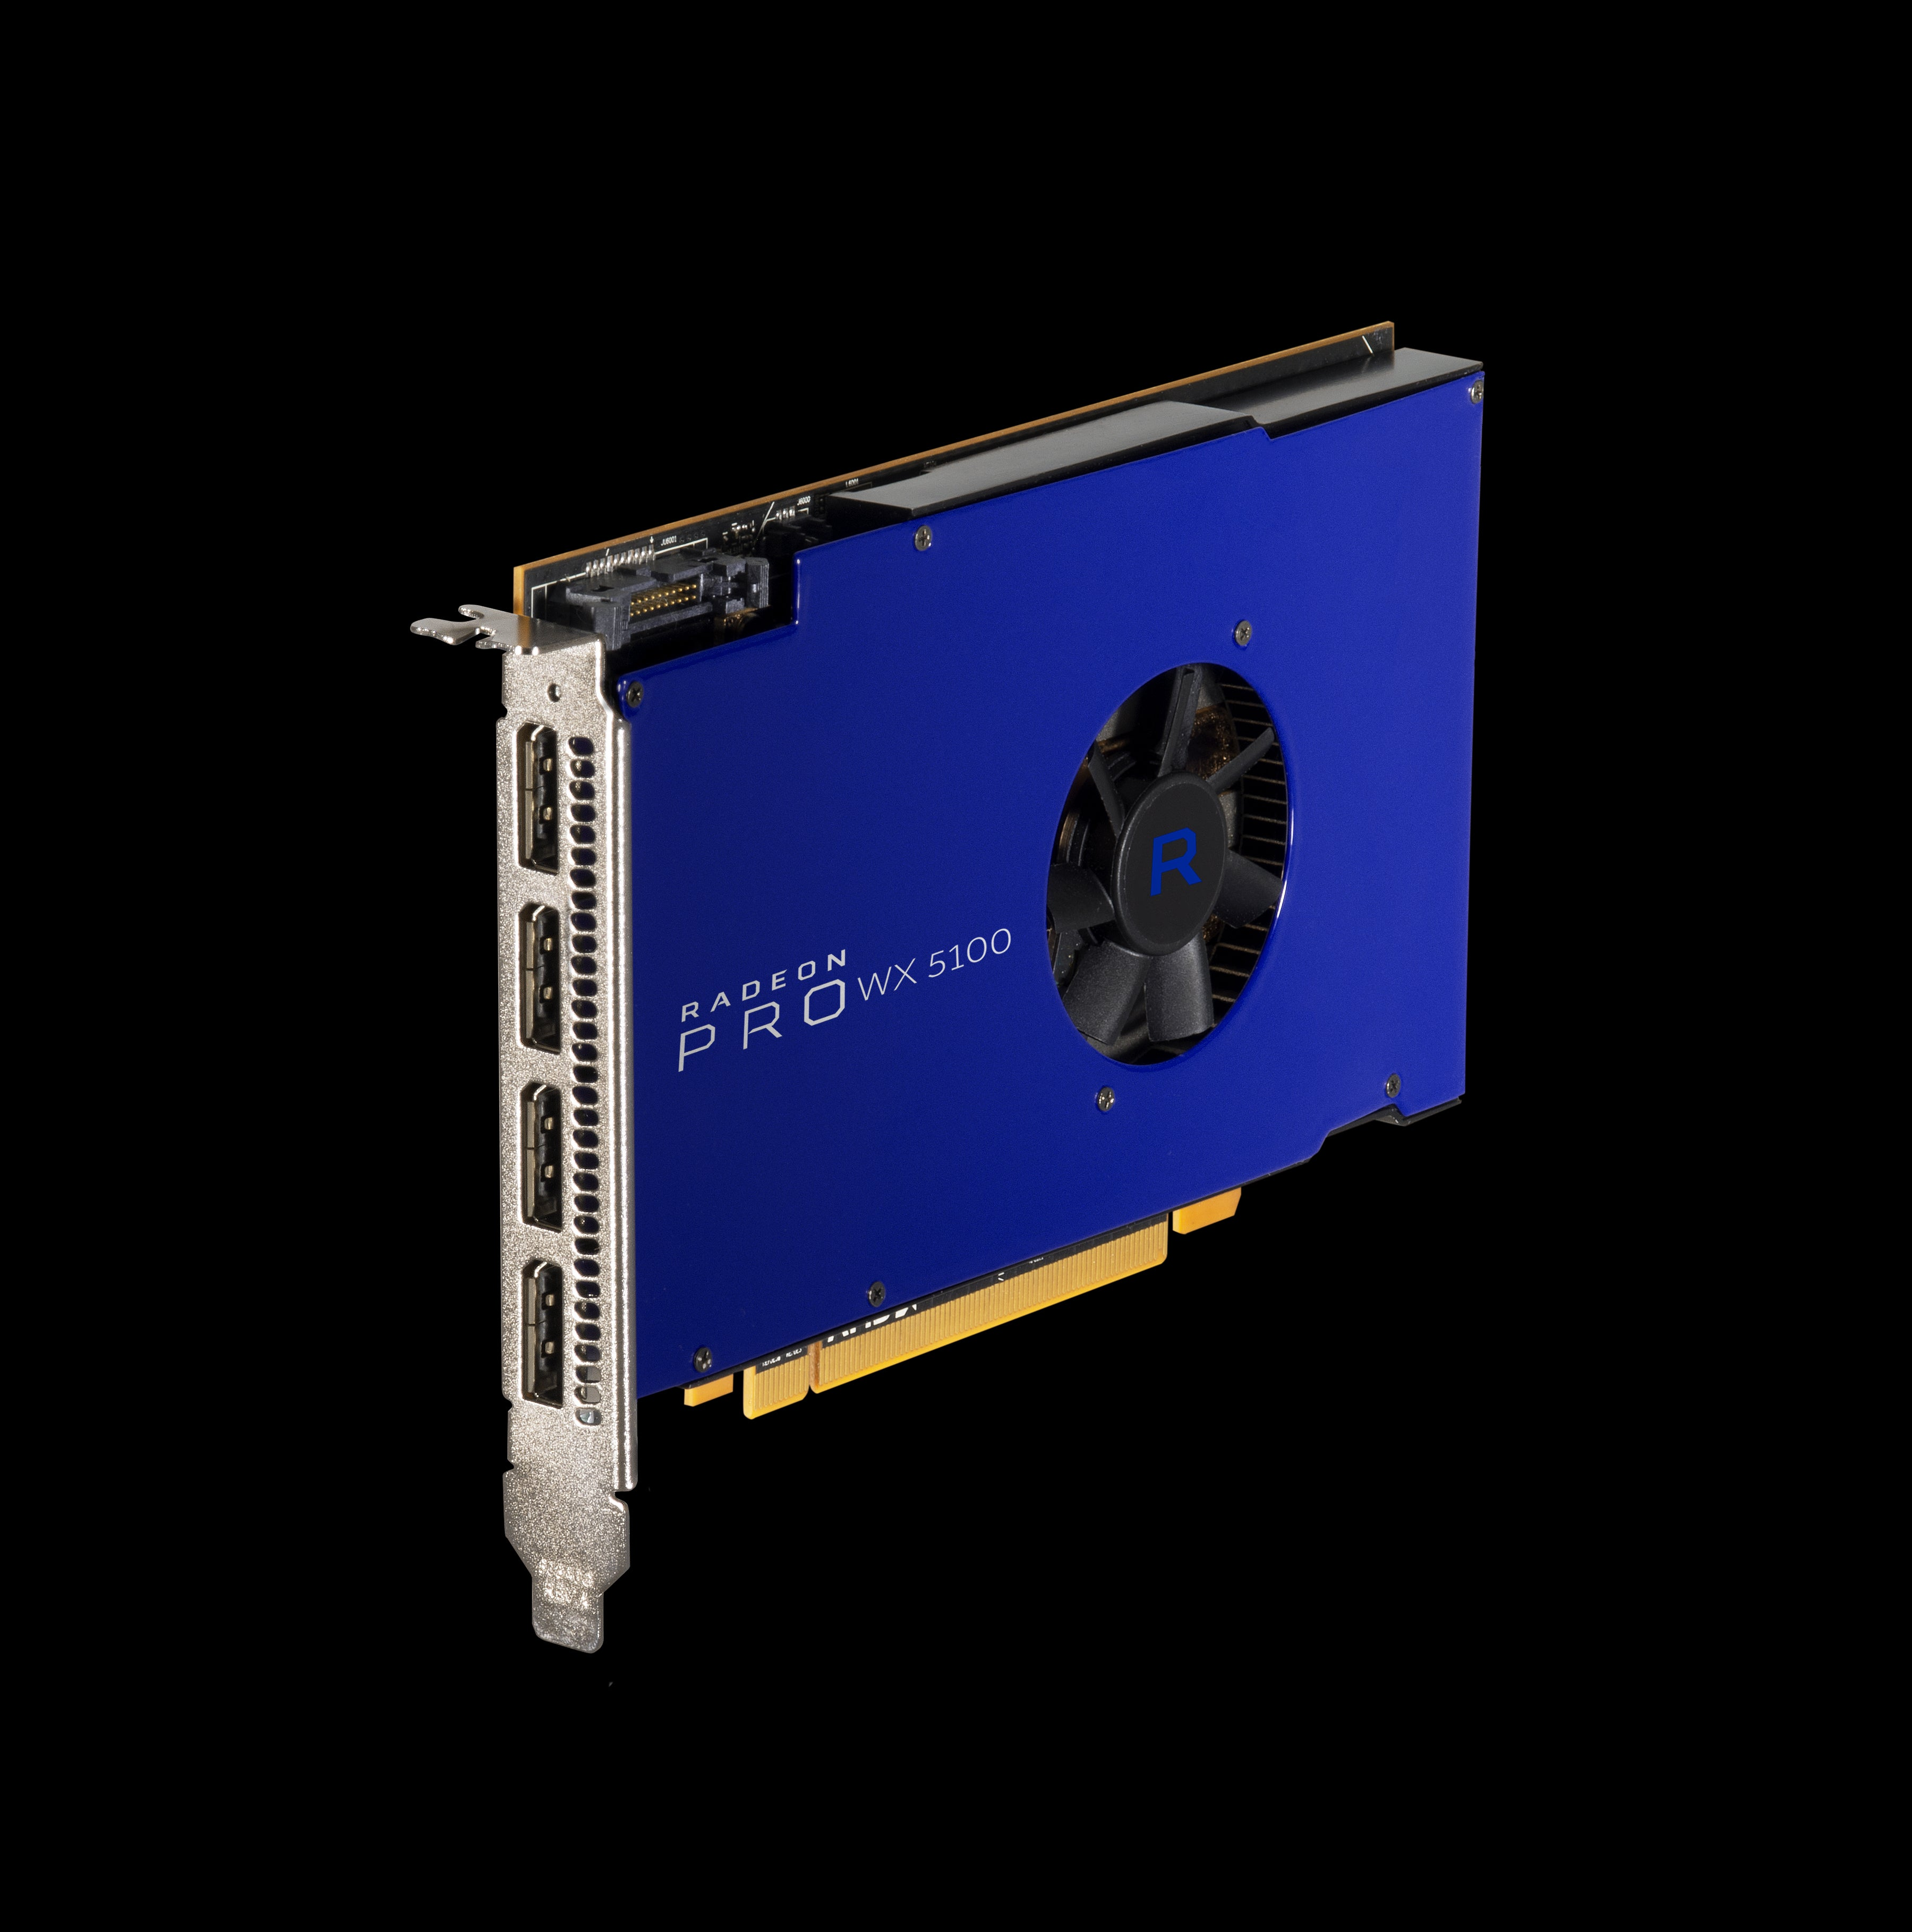 Radeon Pro SSG GPU Comes with 1 TB of SSD Storage Attached